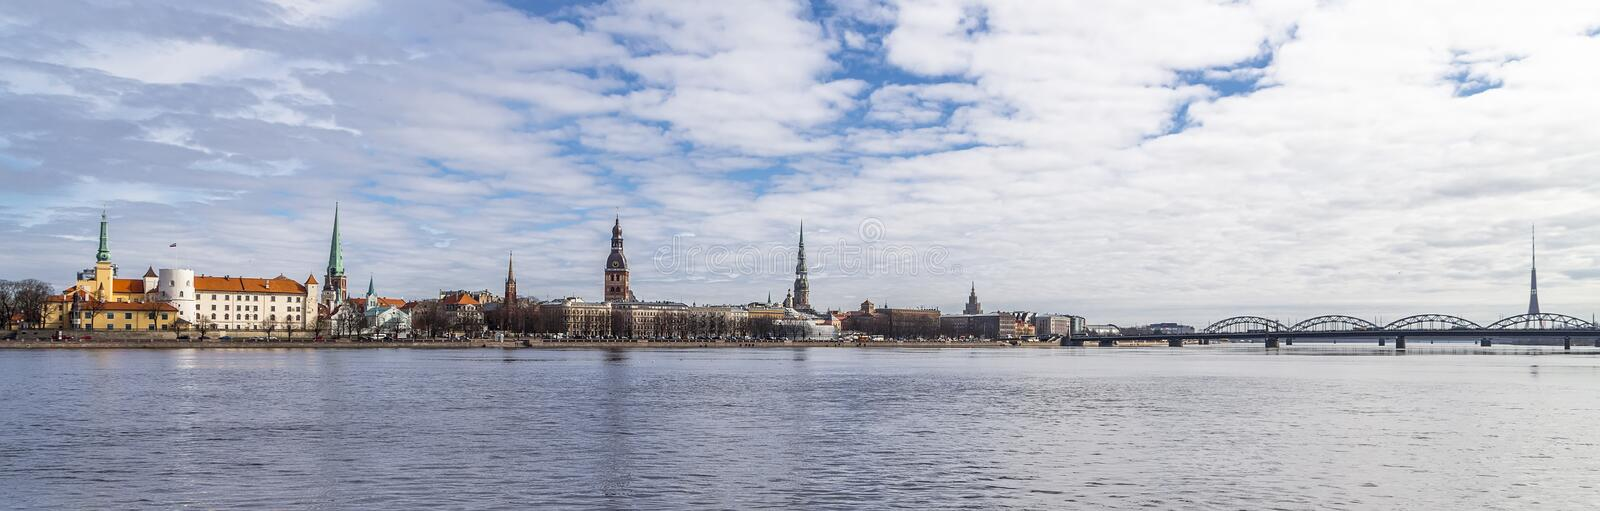 Riga, Latvia - panoramic view of the historical center of the city of Riga royalty free stock image